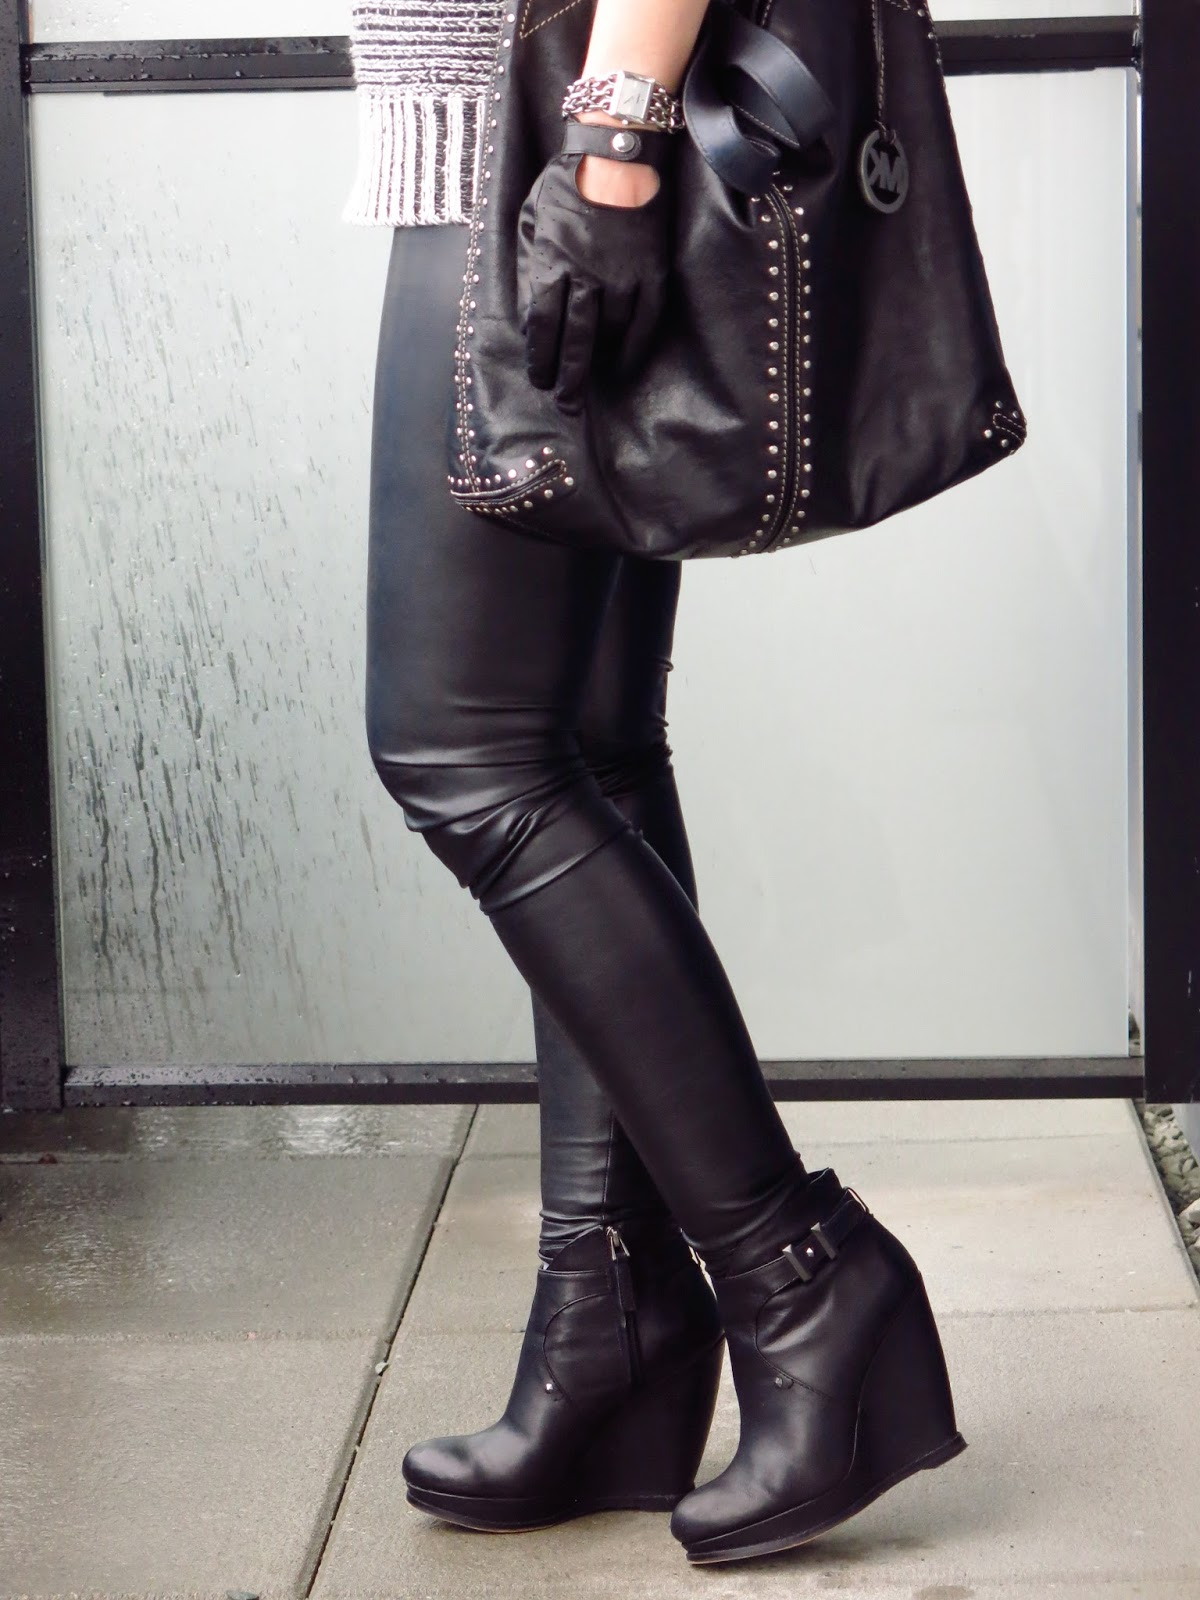 vegan leather leggings, wedge booties, Michael Kors bag, driving gloves